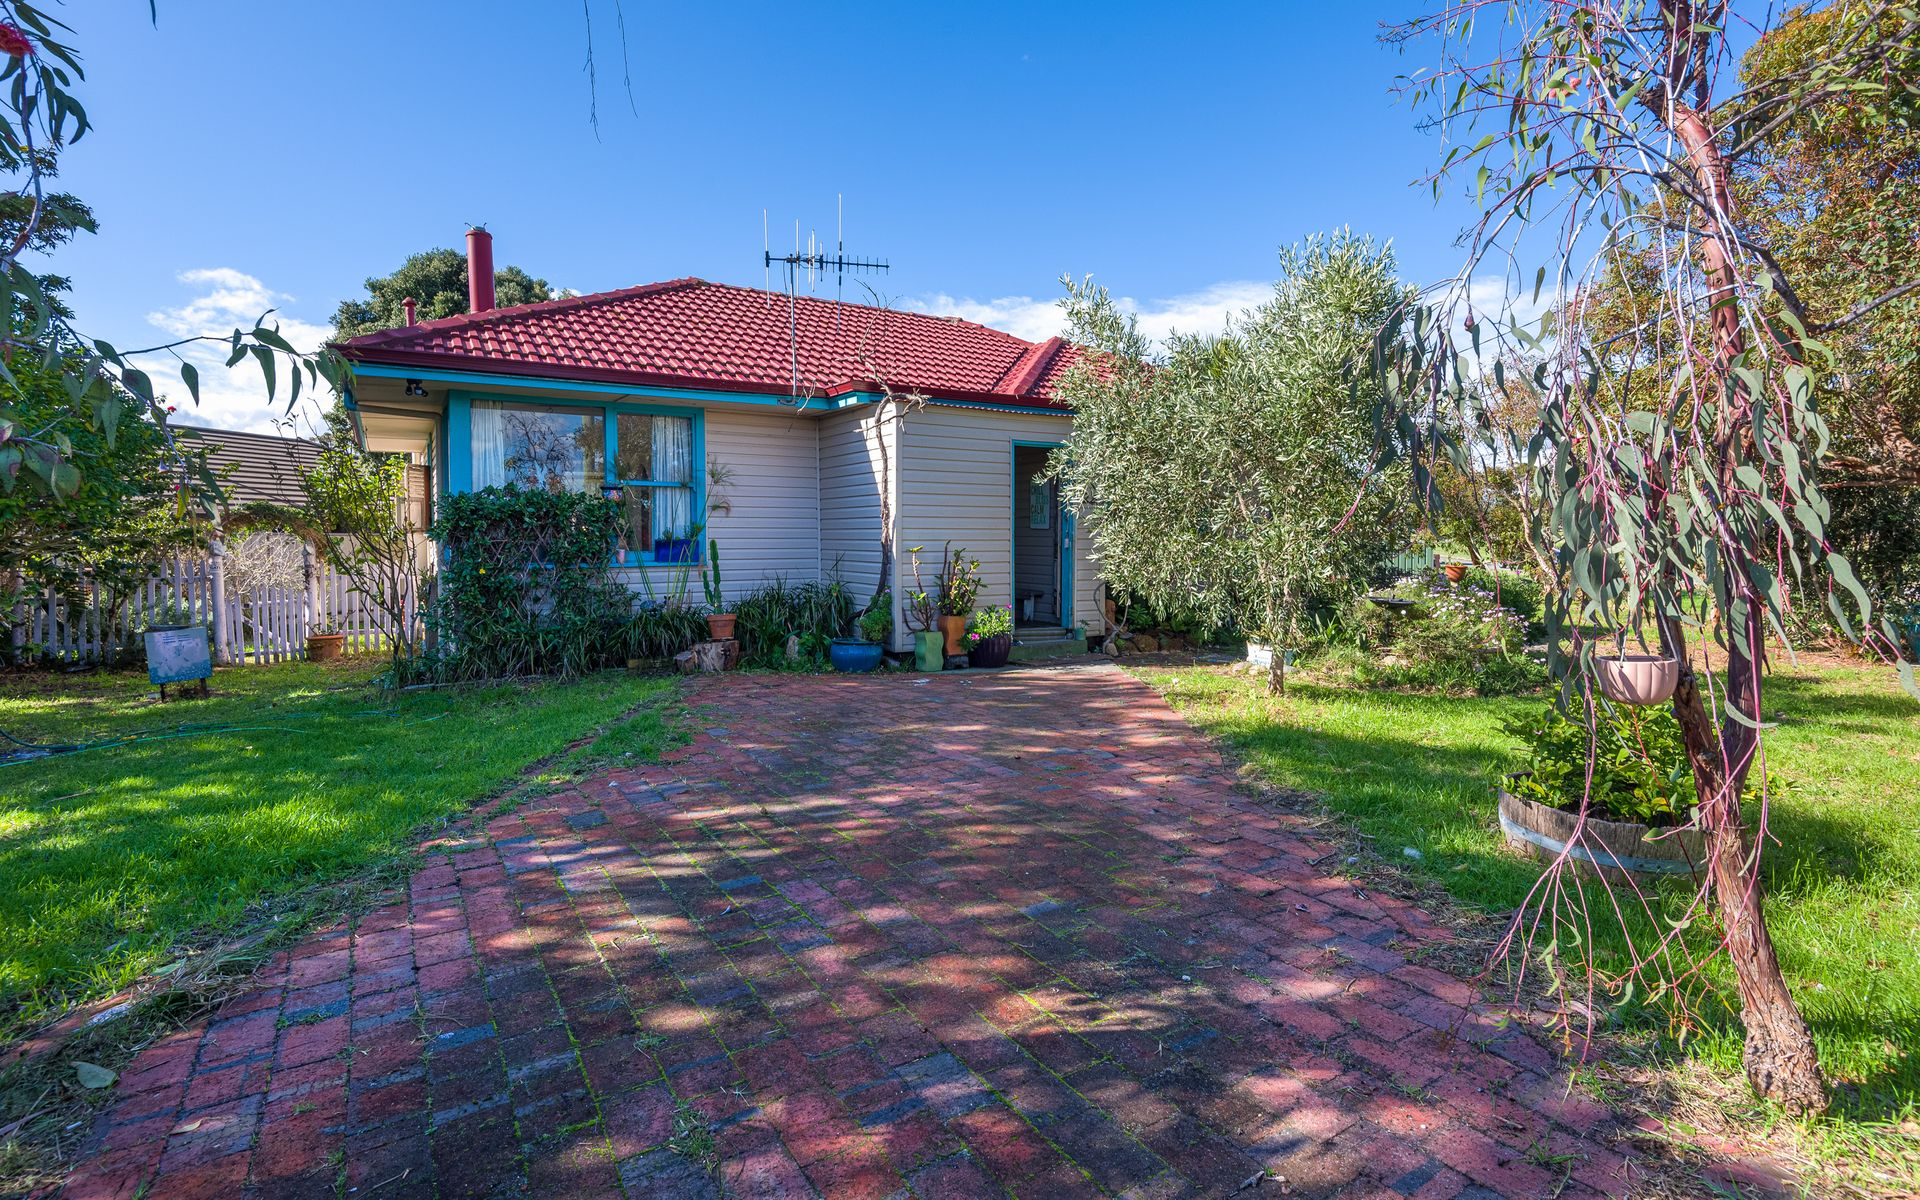 22 Wansbrough Street, Spencer Park, WA 6330